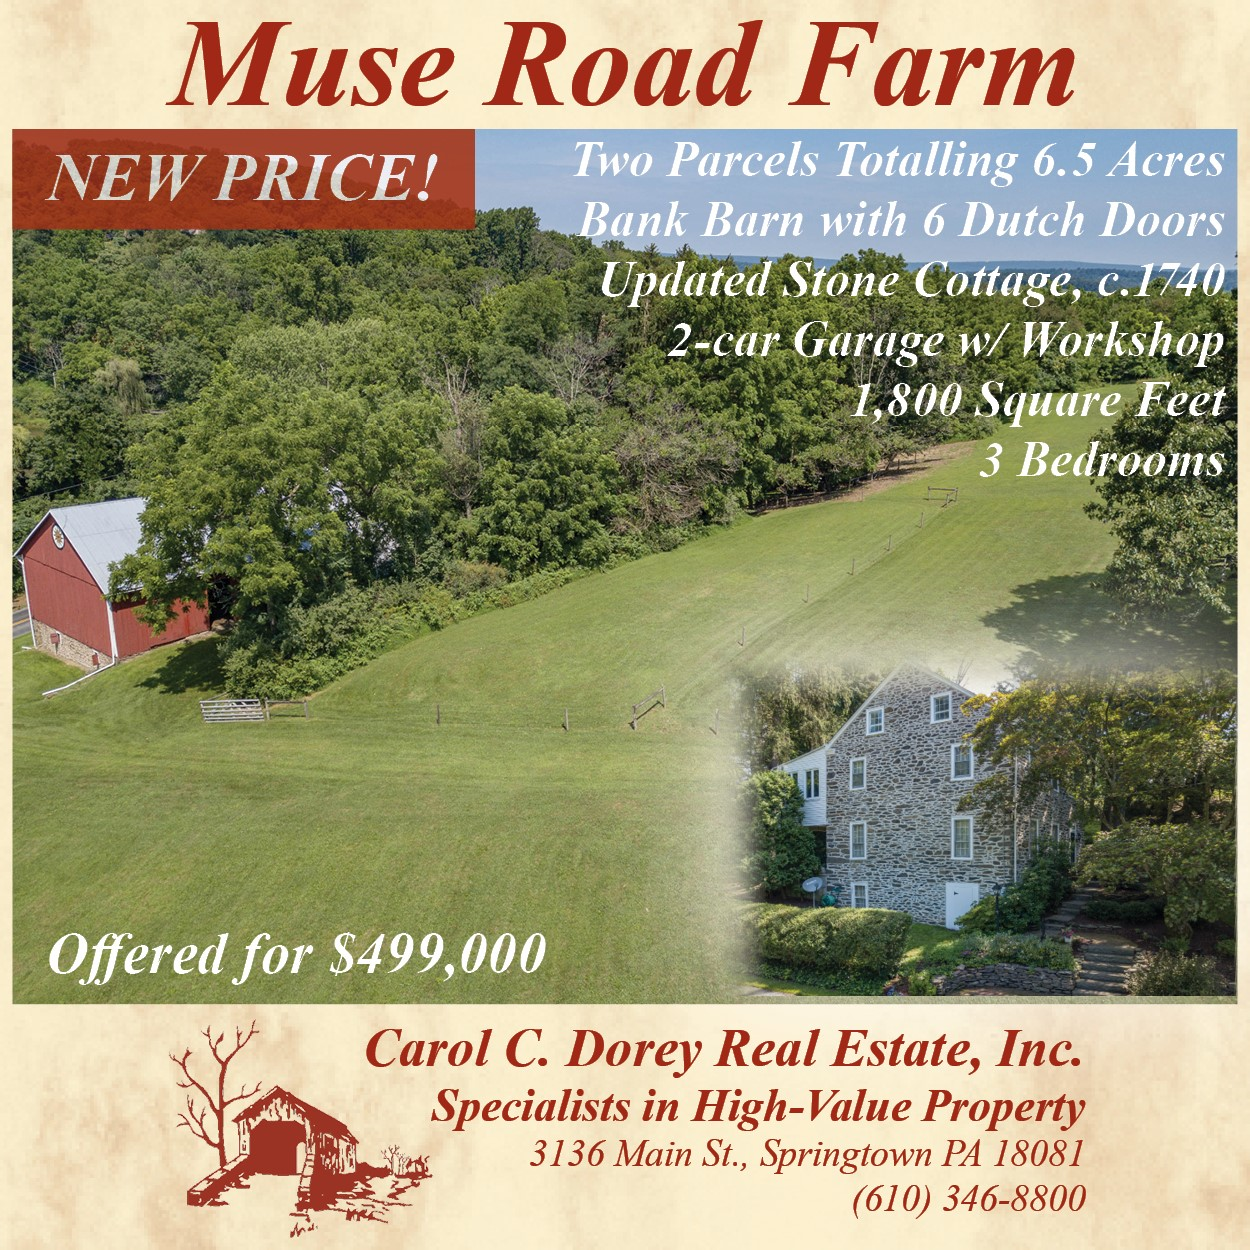 Muse Road Farm